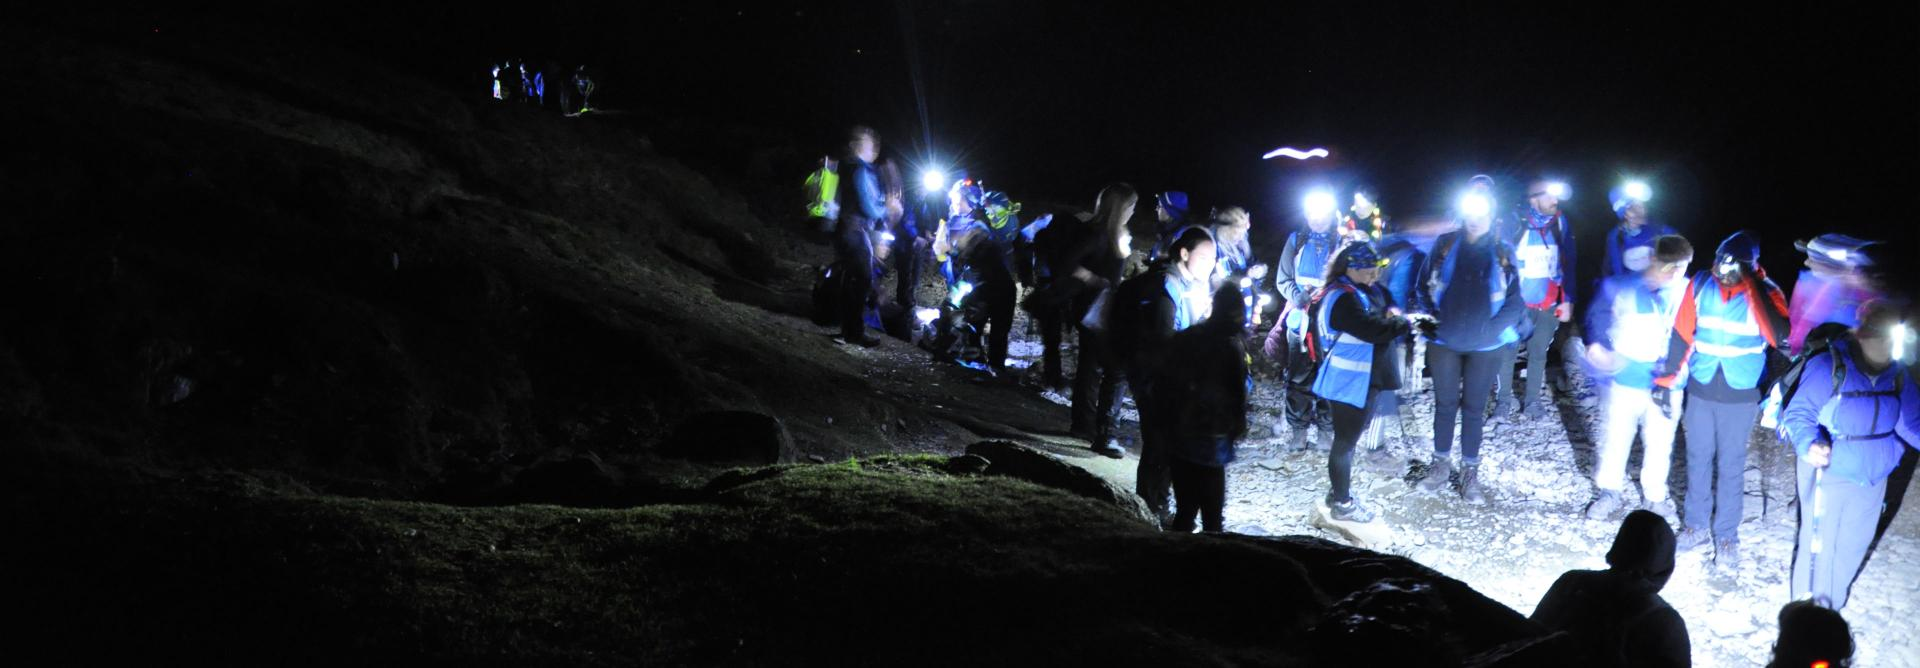 Snowdon trekkers at night